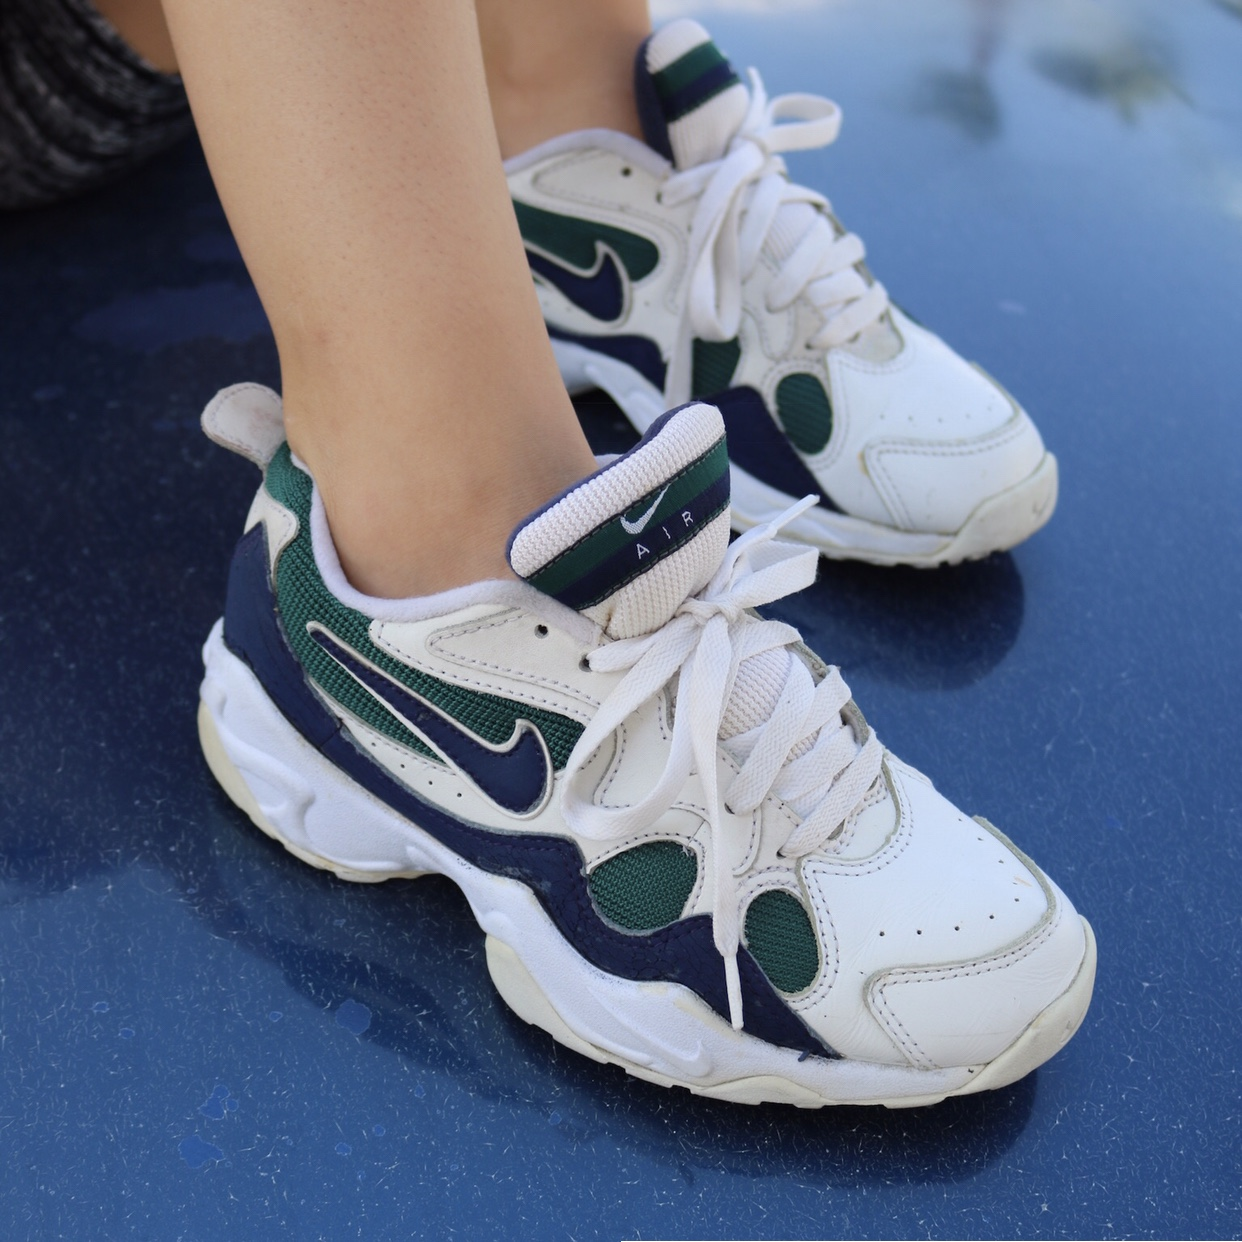 VINTAGE NIKE DAD SHOES ❄️❄️ Condition